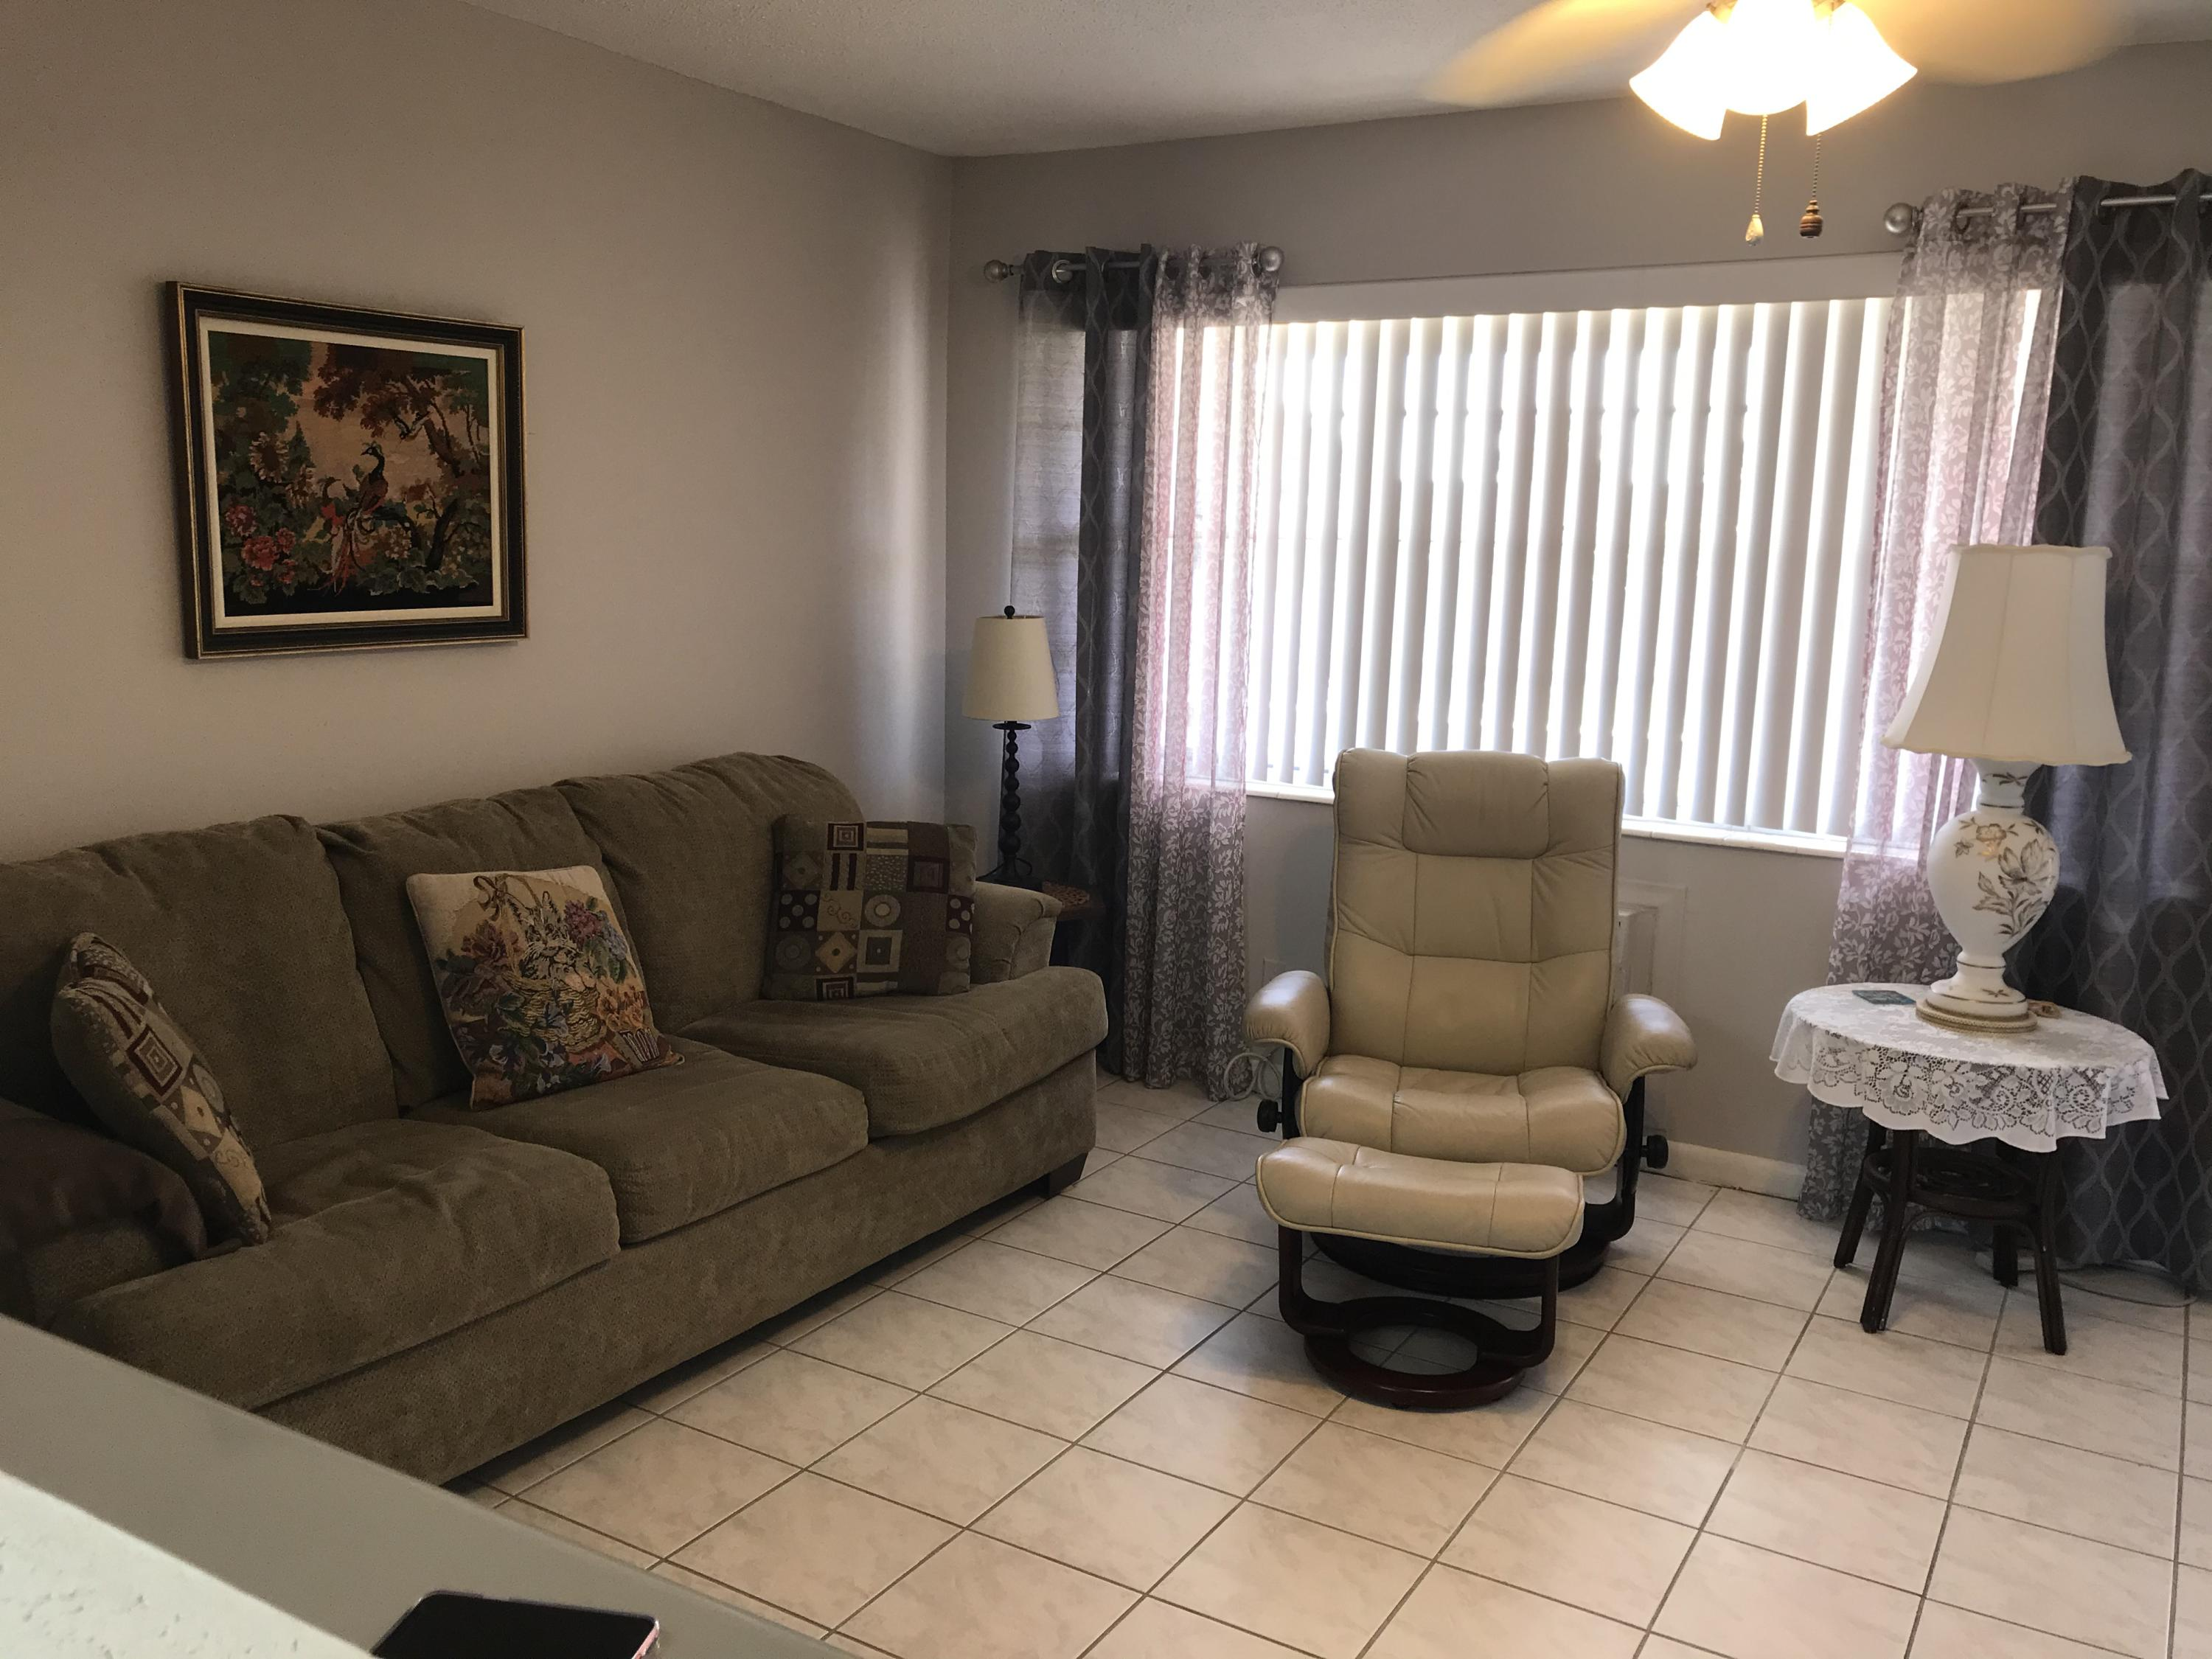 Photo of 321 Windsor N, West Palm Beach, FL 33417